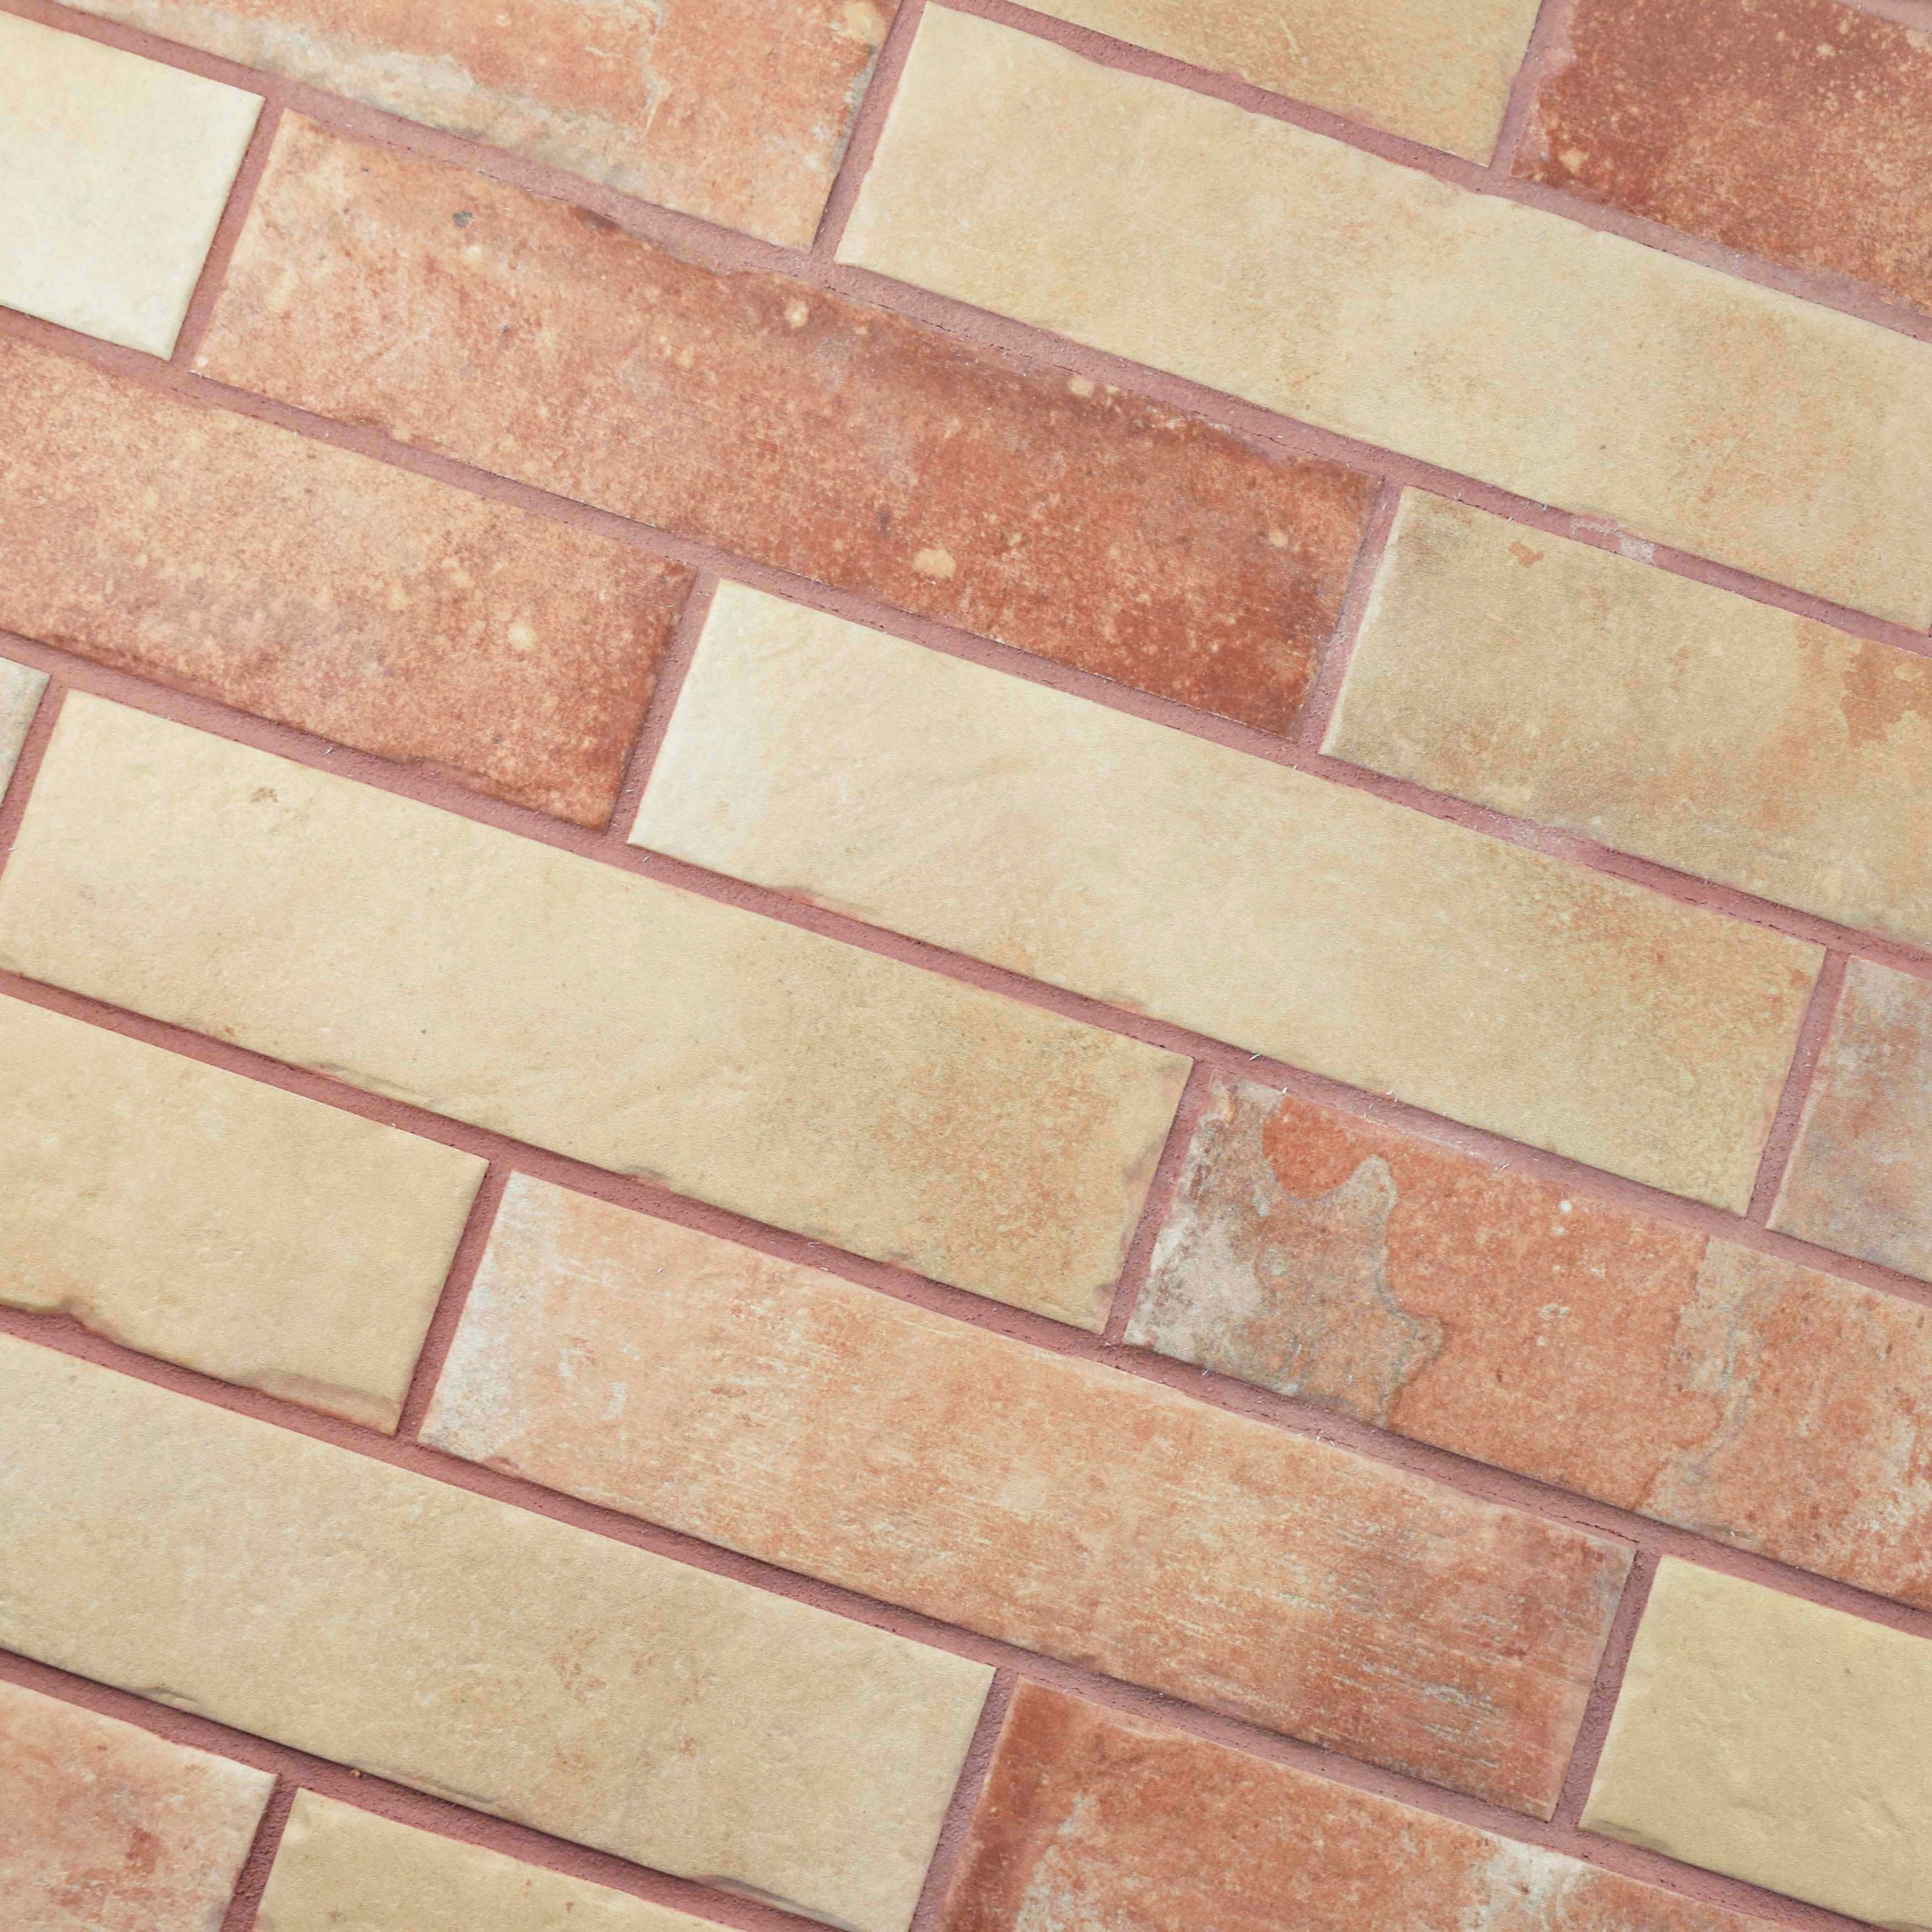 Somertile 2 5x10 Inch Suffolk Brick North East Porcelain Floor And Wall Tile 27 Tiles 5 29 Sqft Free Shipping On Orders Over 45